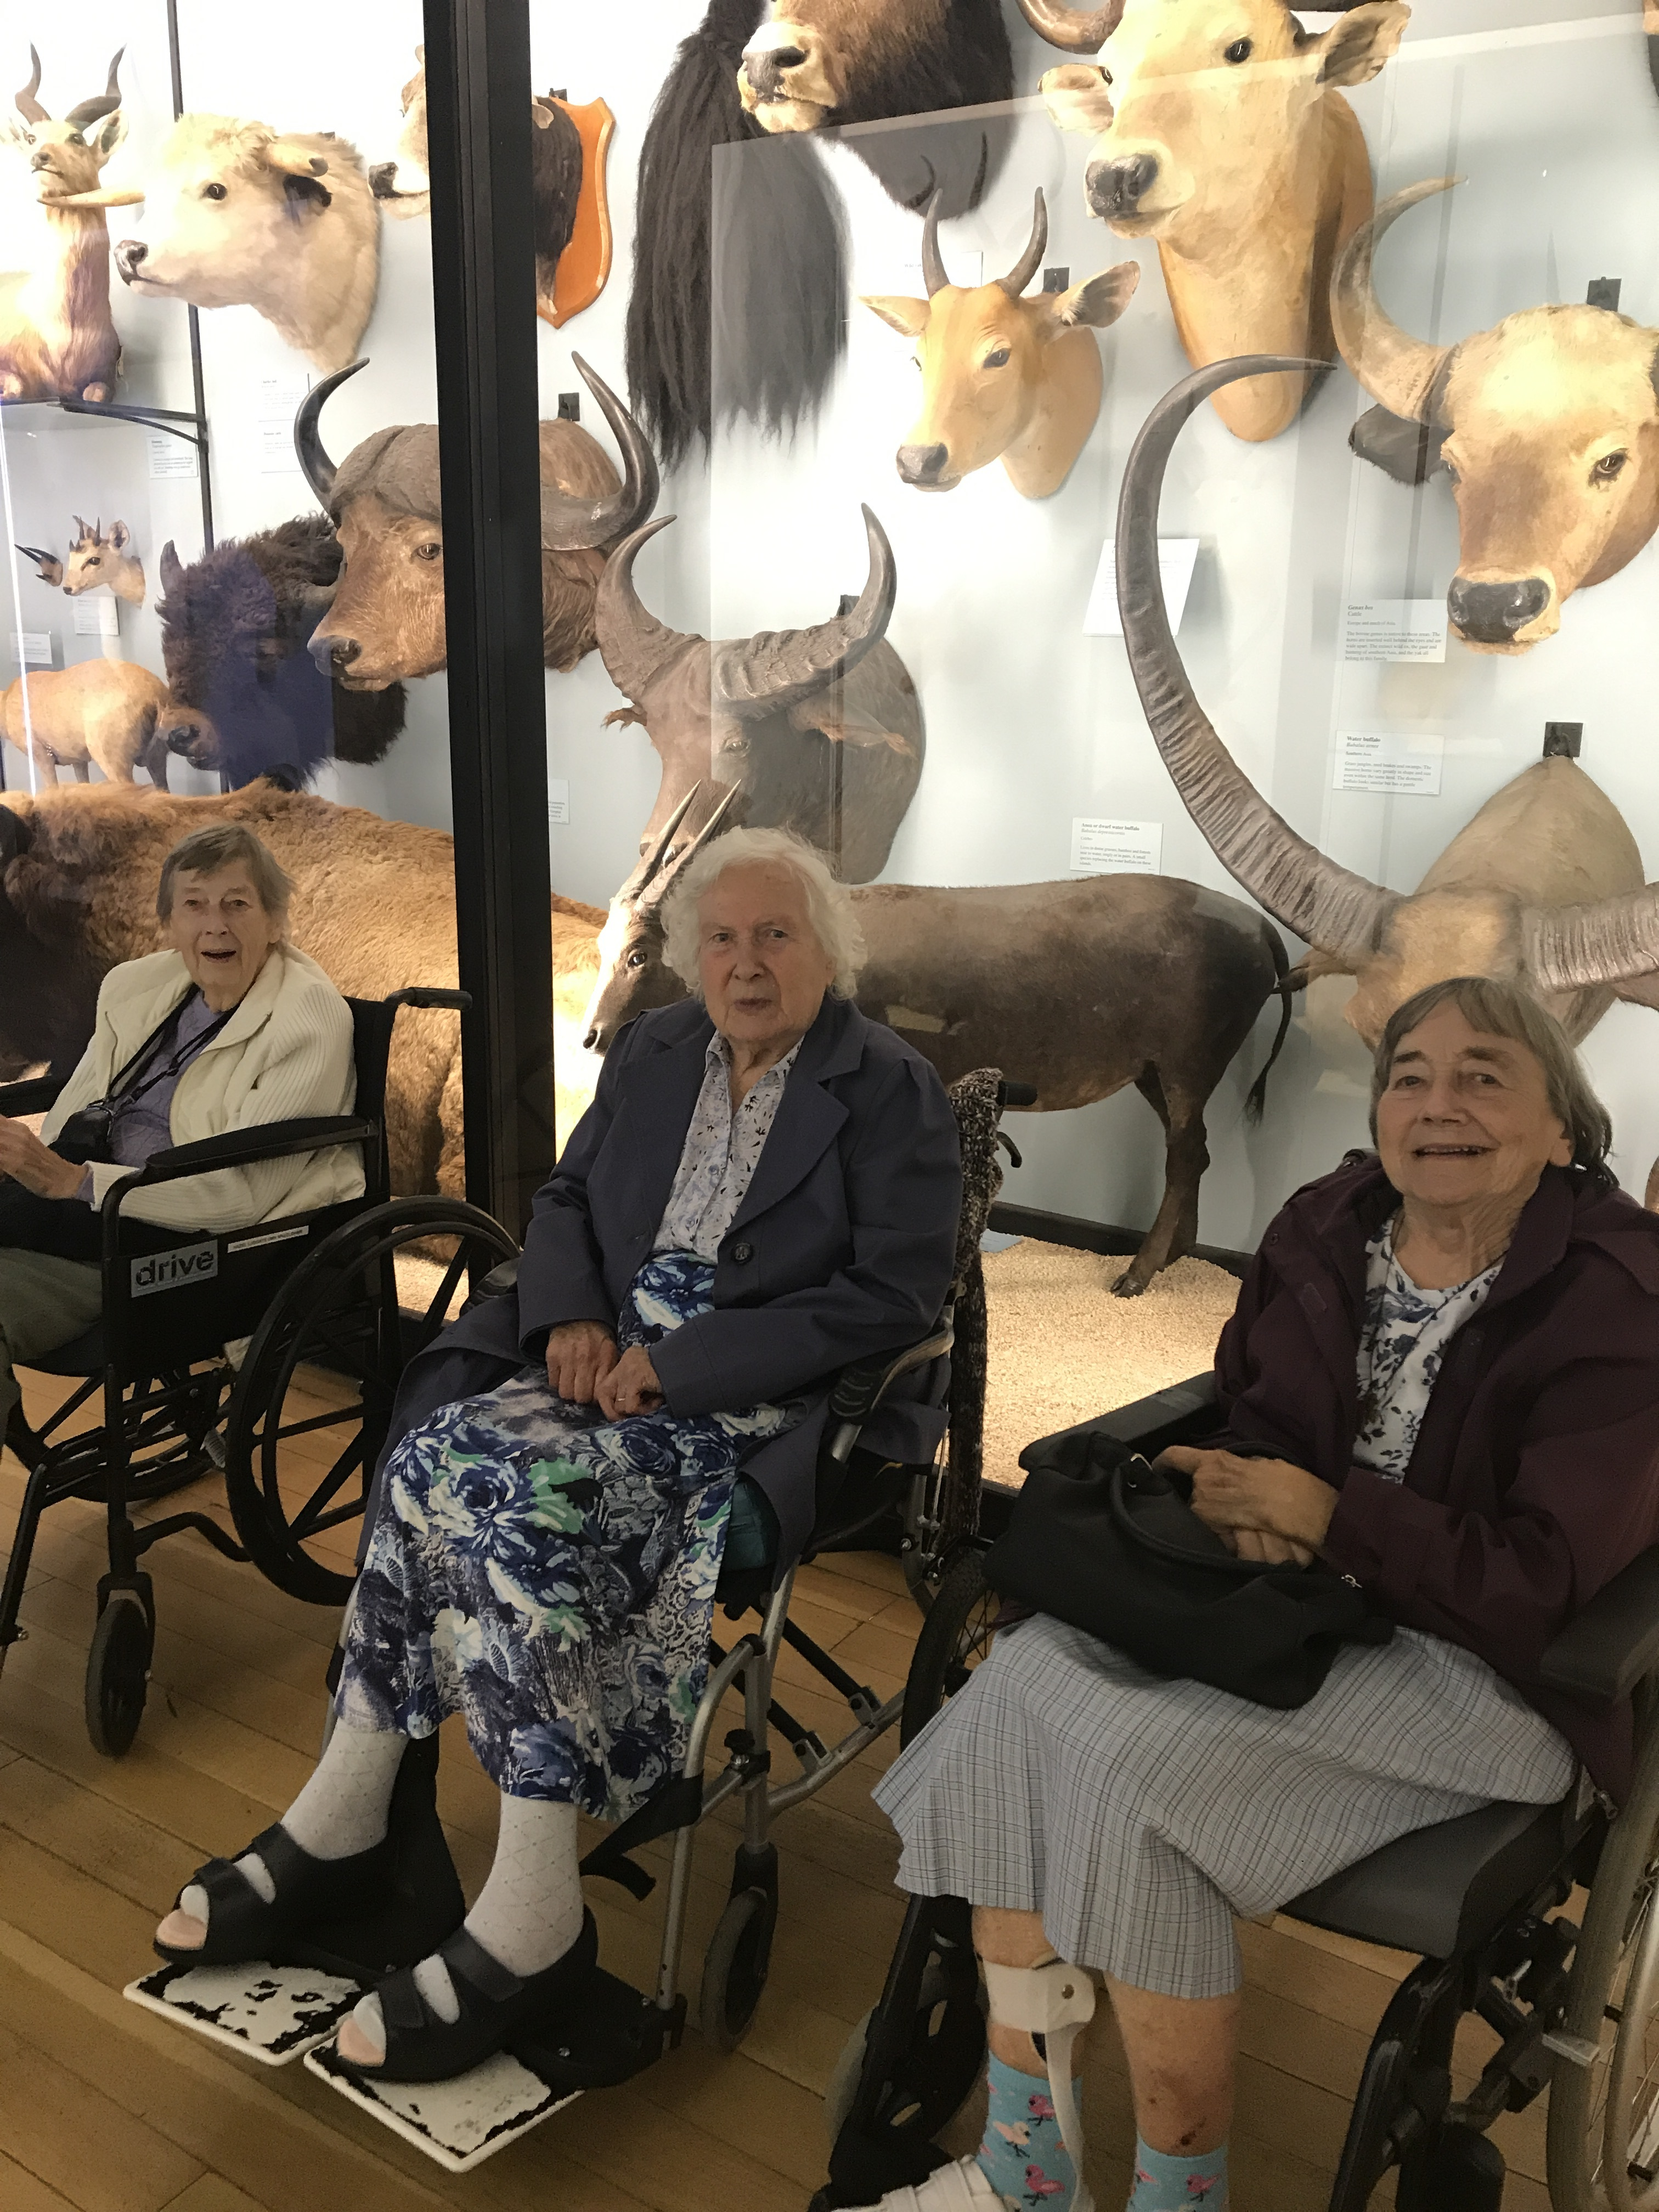 The ladies at Tring Natural History Museum